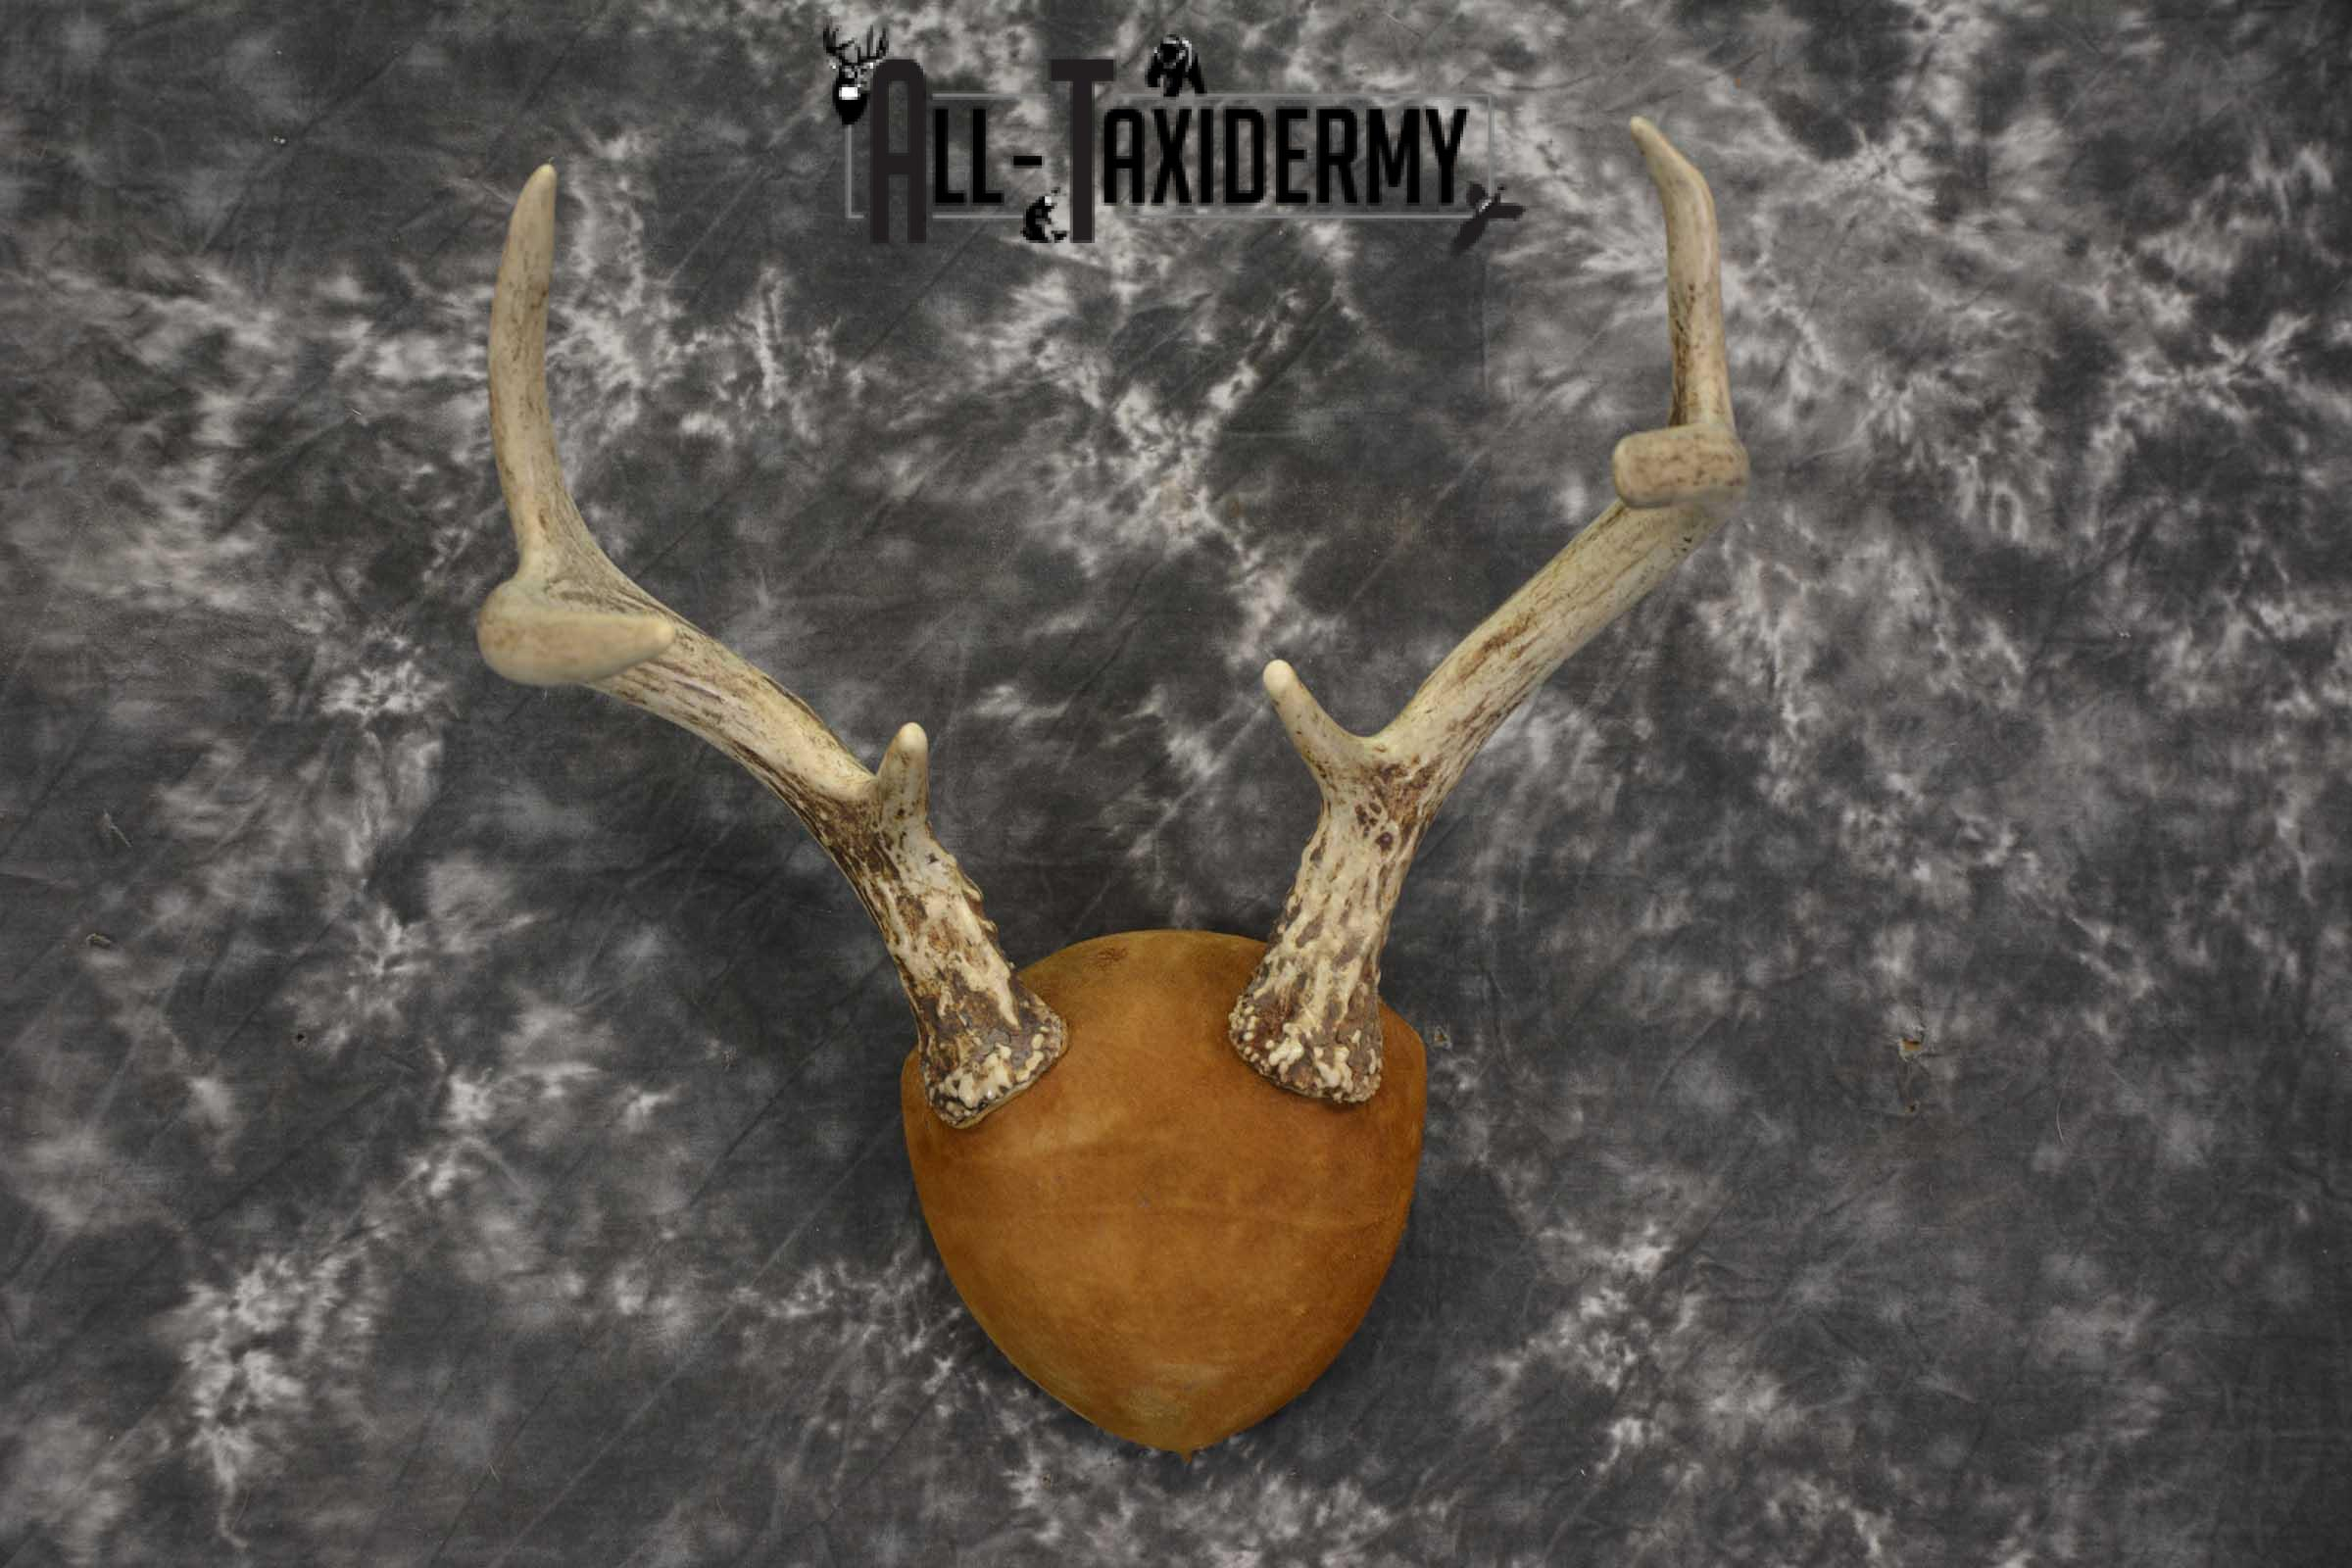 Whitetail antler taxidermy plaque for sale SKU 1843.5